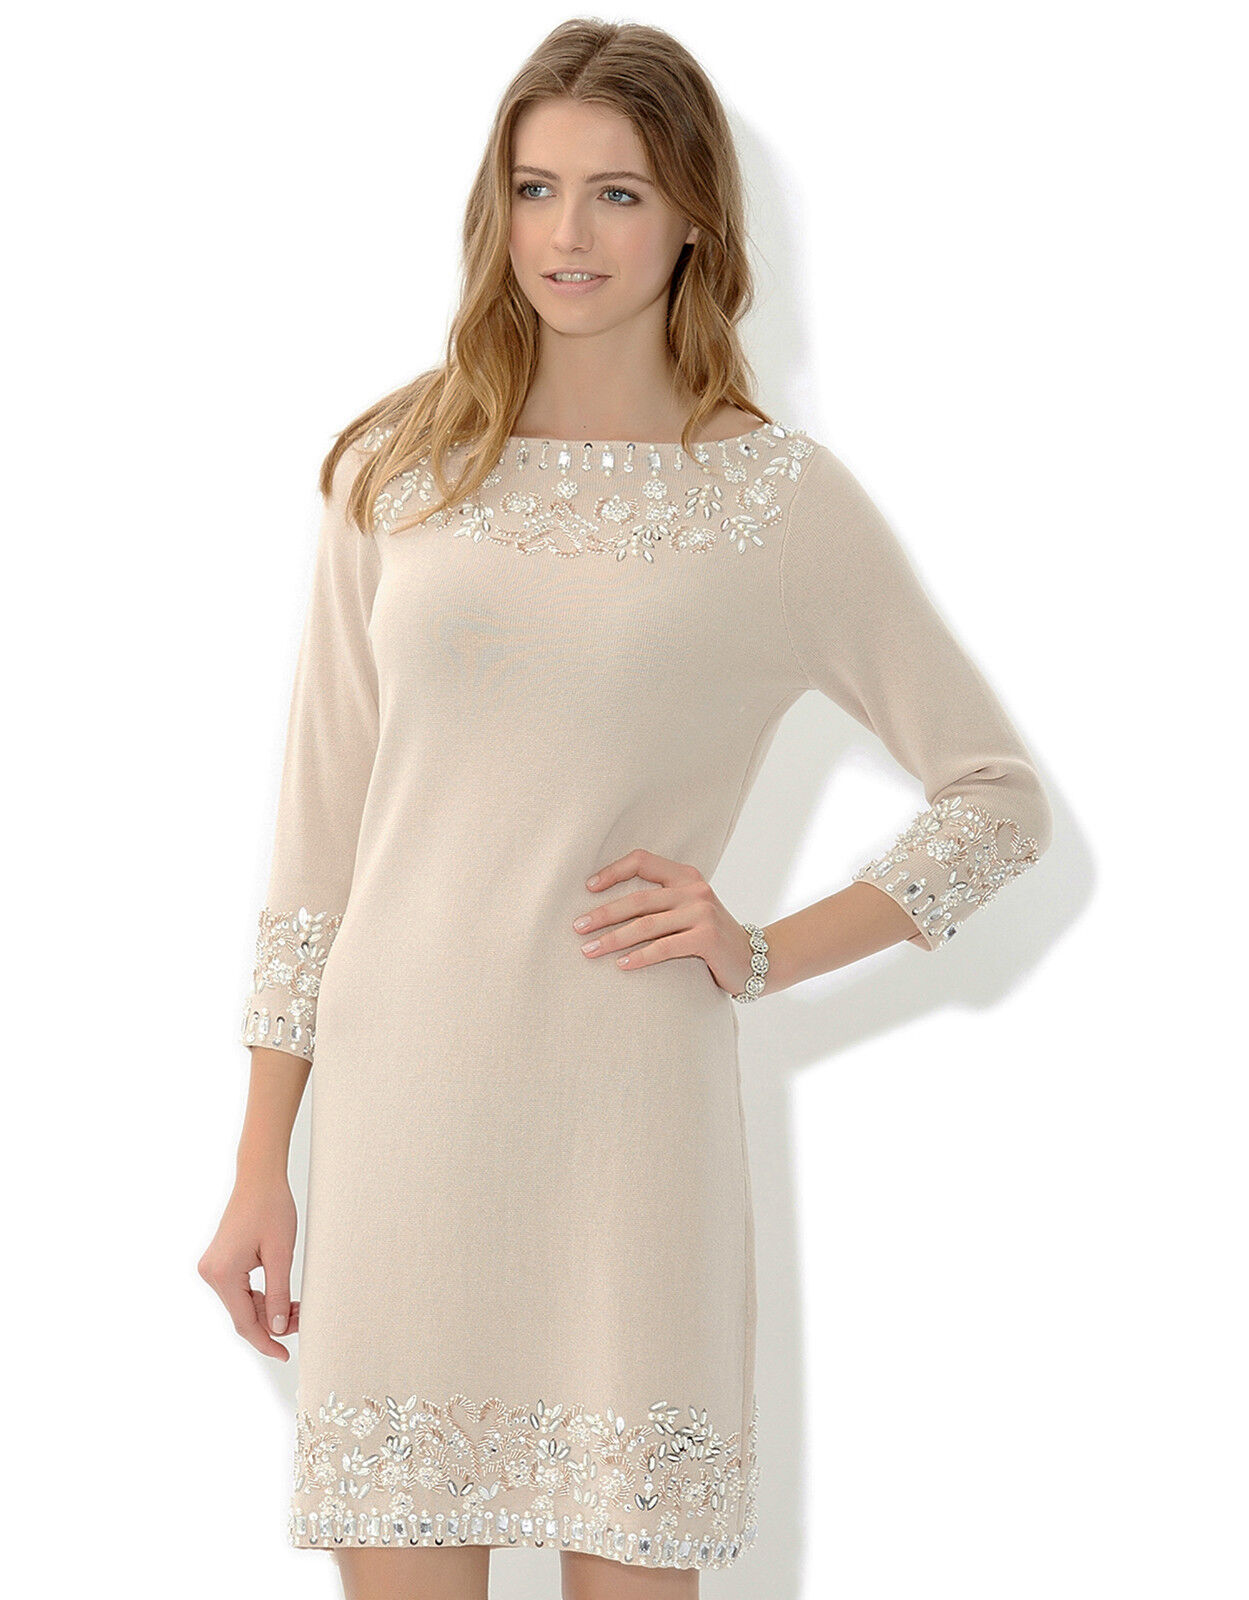 UK 12 MONSOON Nude Imelda Sequin Hem Mother Of The Bride Knit Tunic Dress